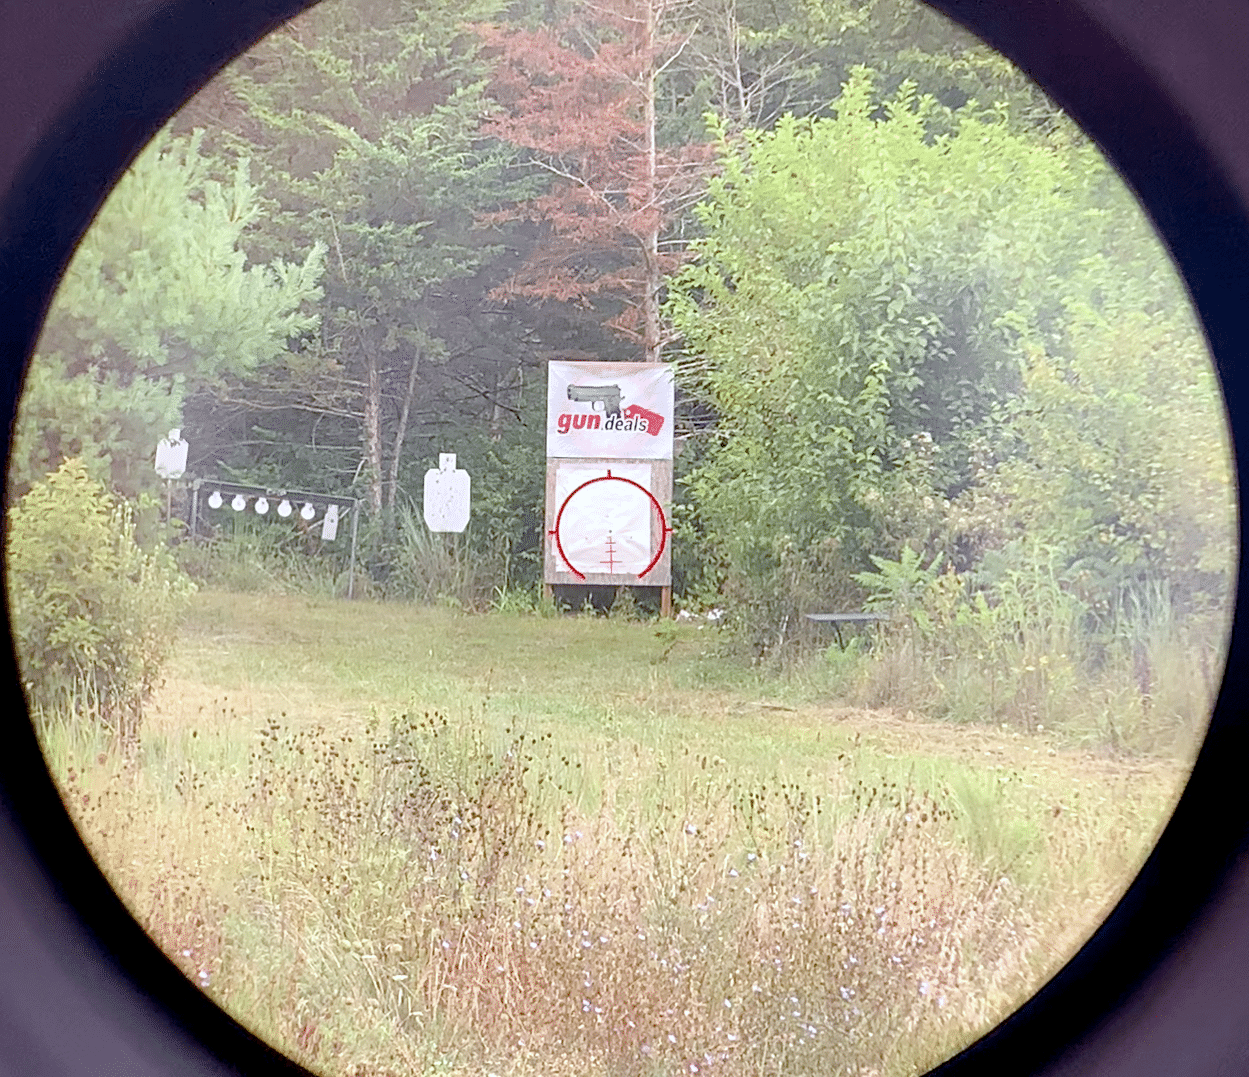 View through AT3 Tactical prism scope